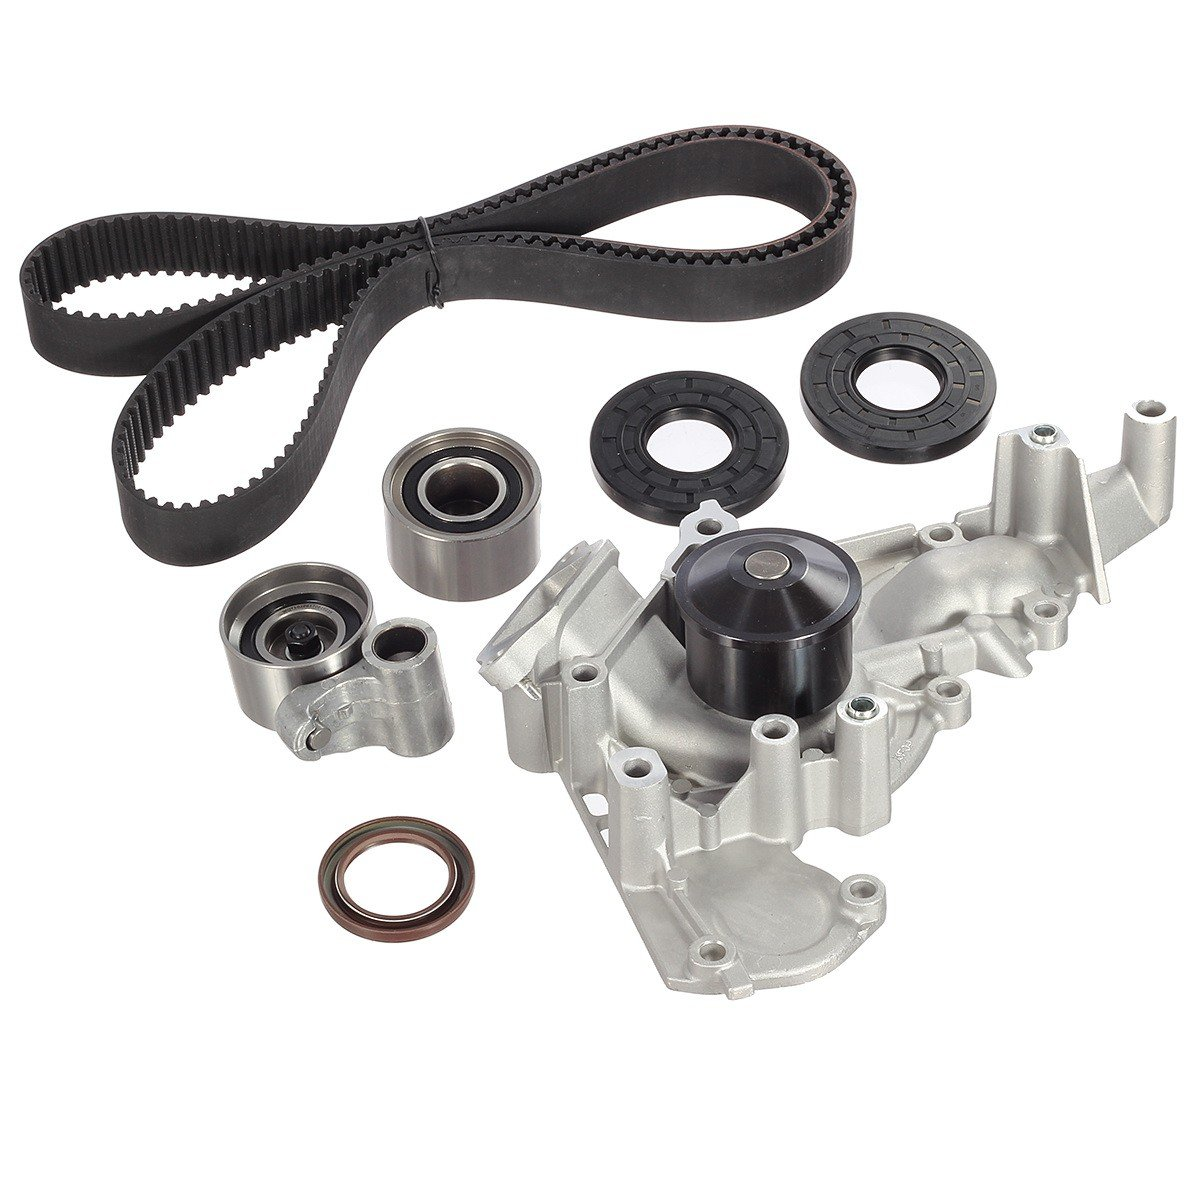 Tkt 021 Tkt021 Engine Timing Belt Kit With Water Pump 2000 Saab 9 3 Fit For Lexus Toyota Automotive